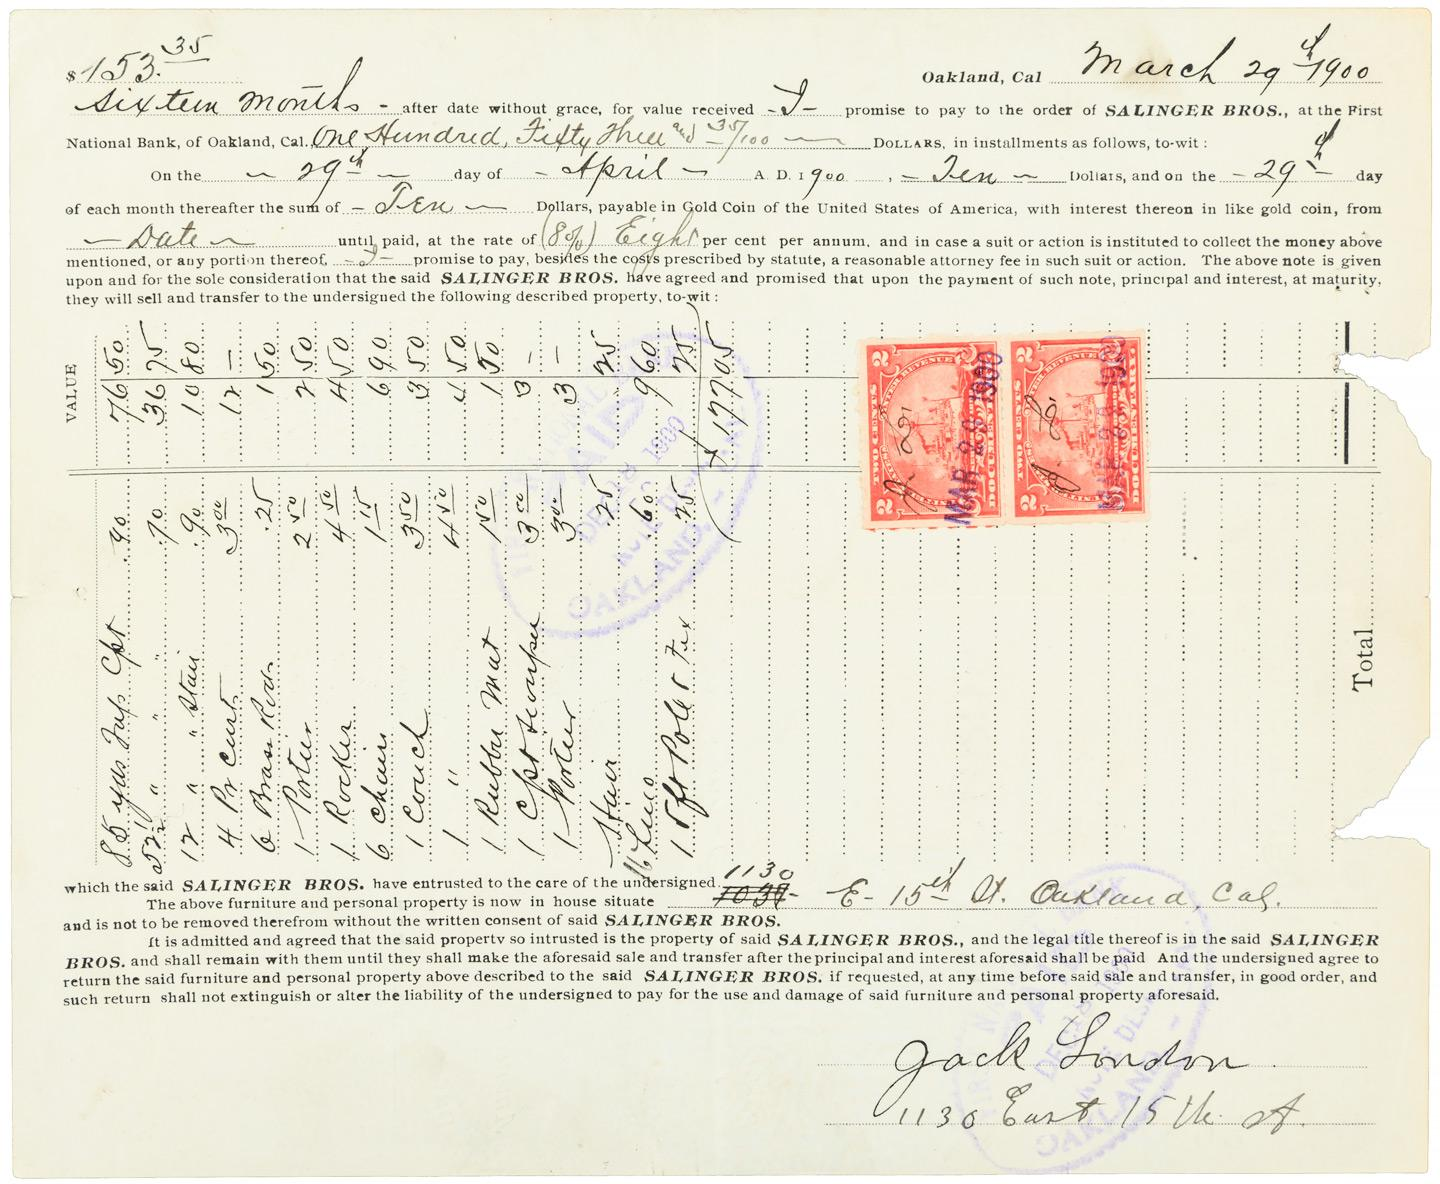 Purchase Agreement Between Jack London And The Salinger Bros For